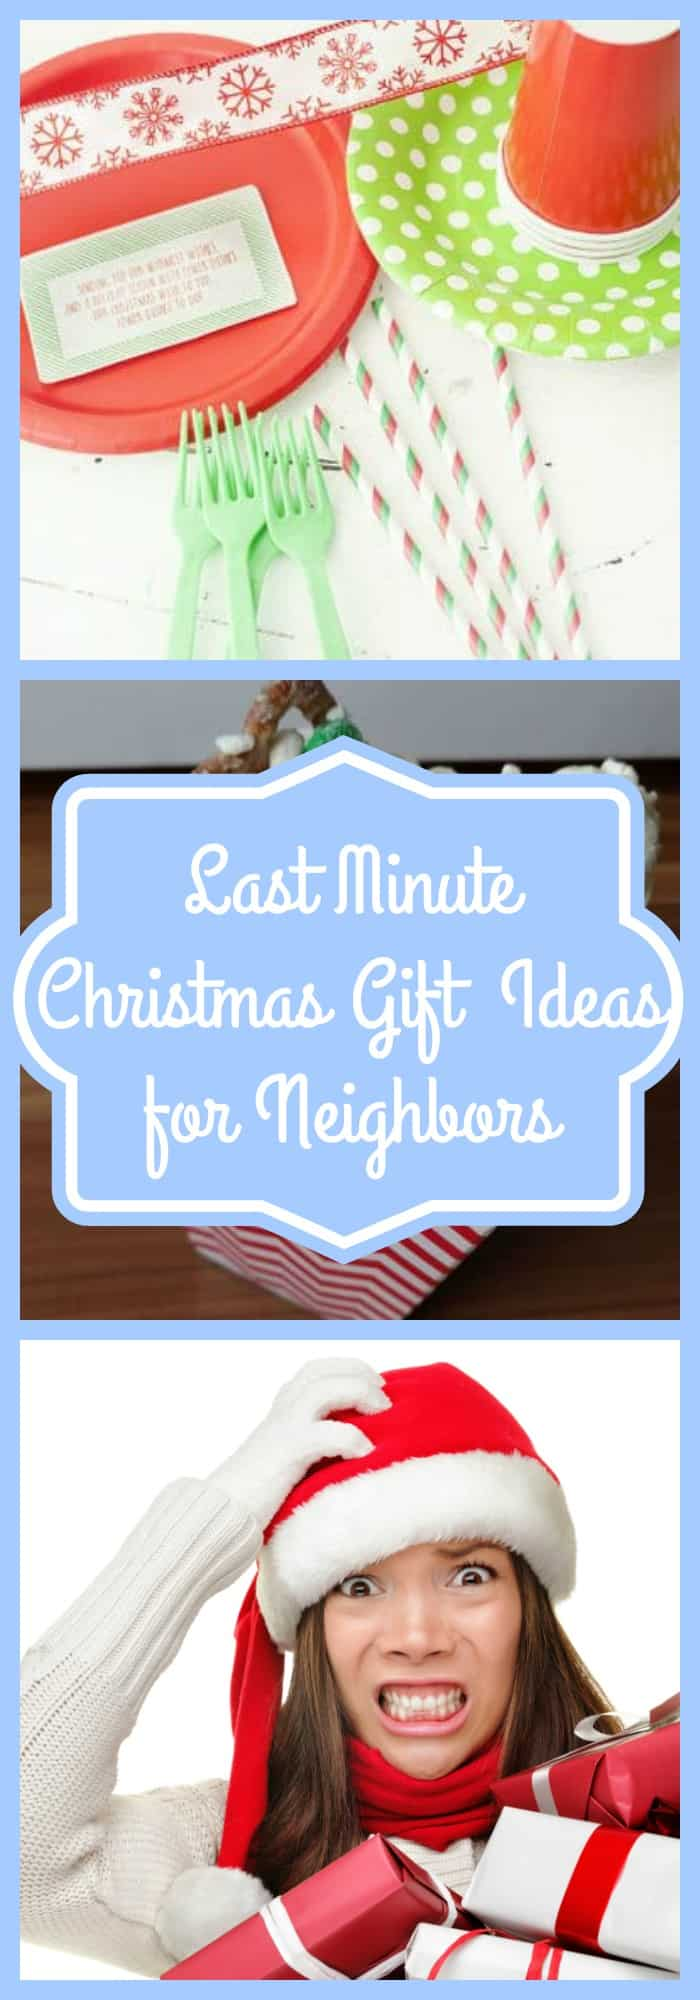 Last Minute Christmas Gift Ideas for Neighbors